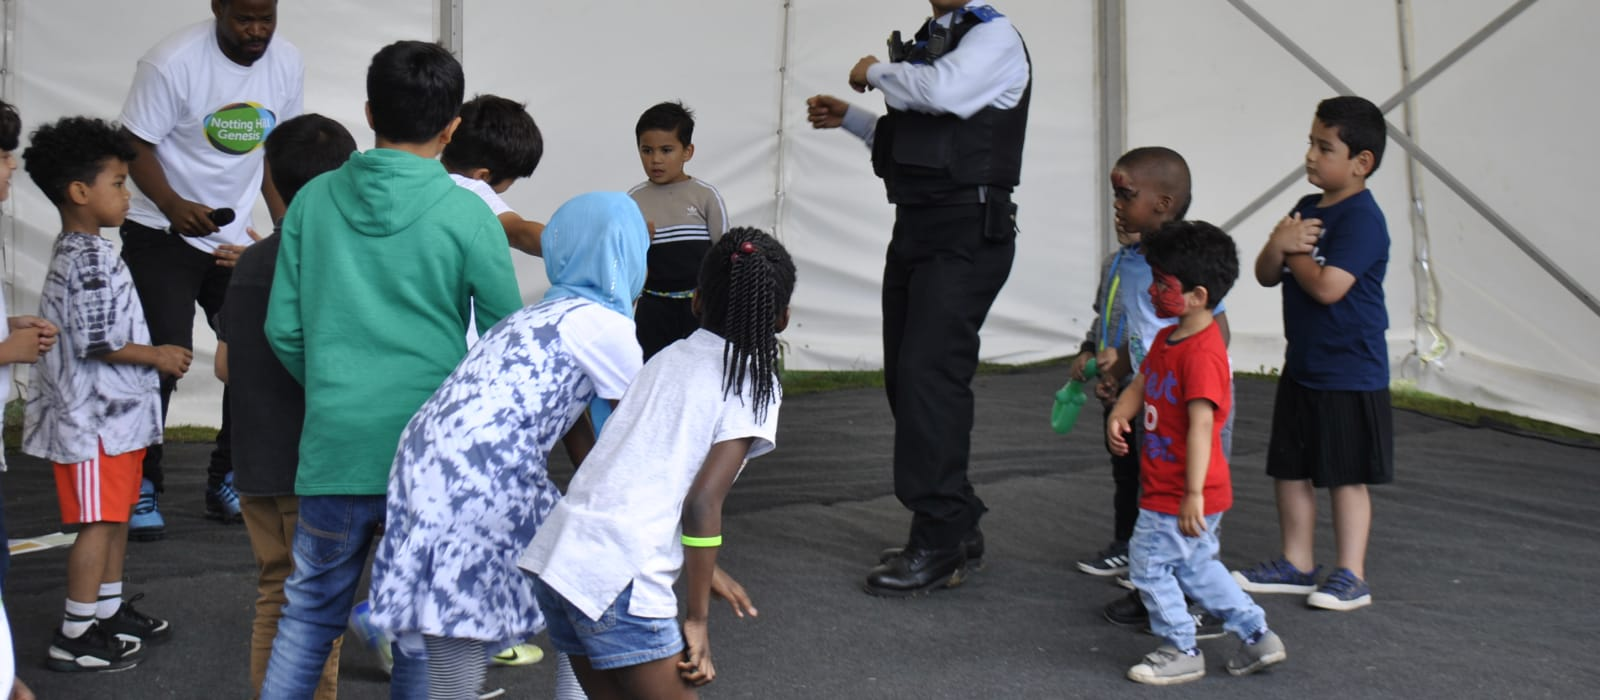 Policeman dancing with community